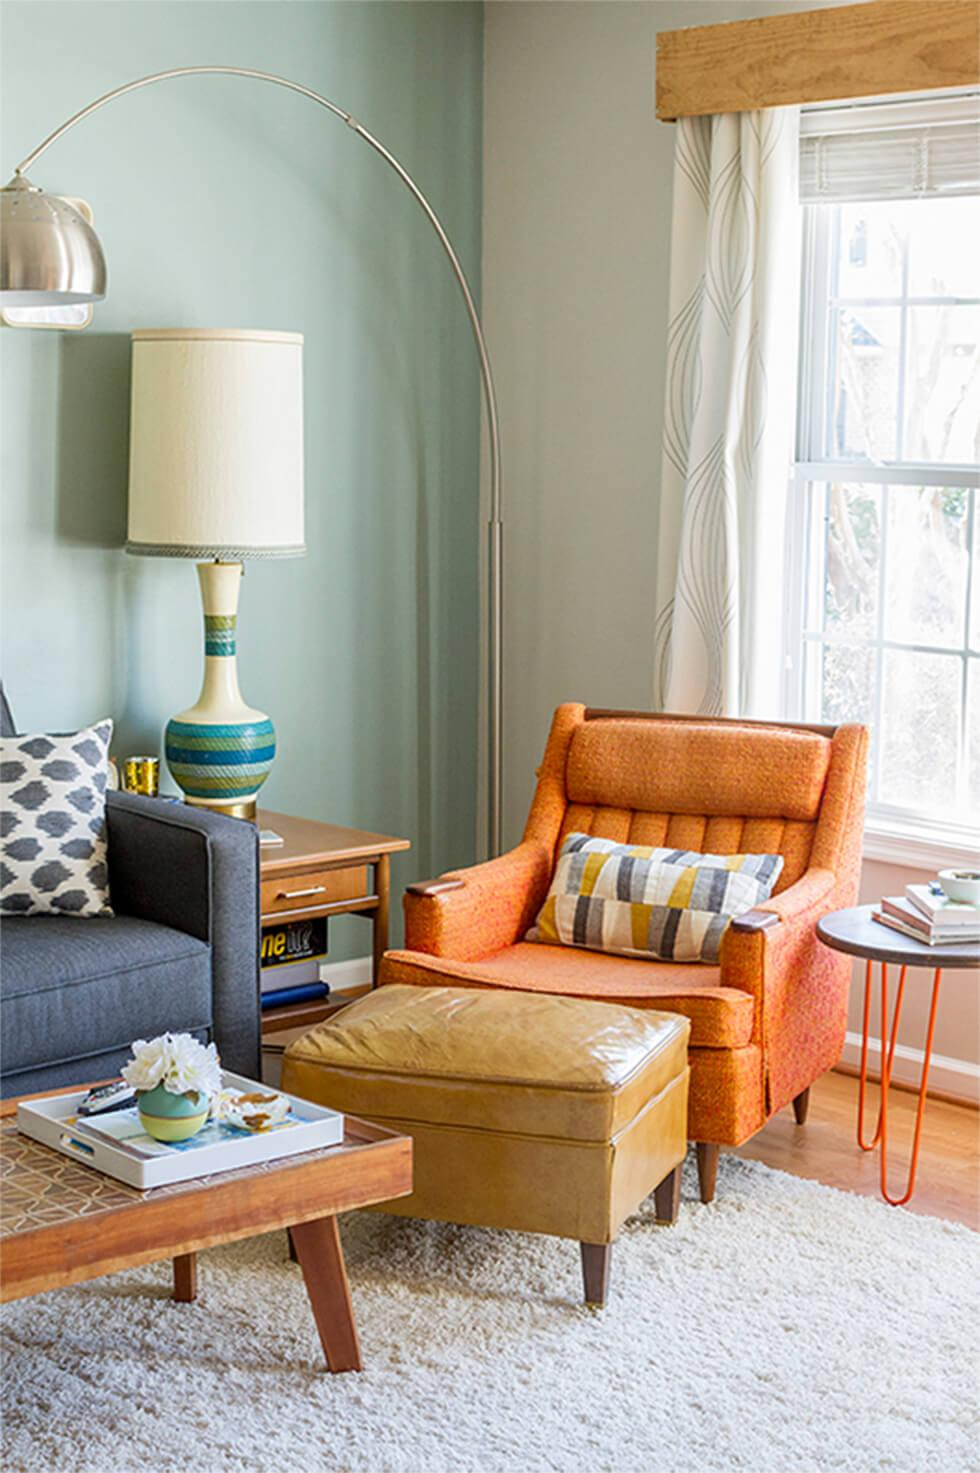 Cosy mid-century living room with orange armchair